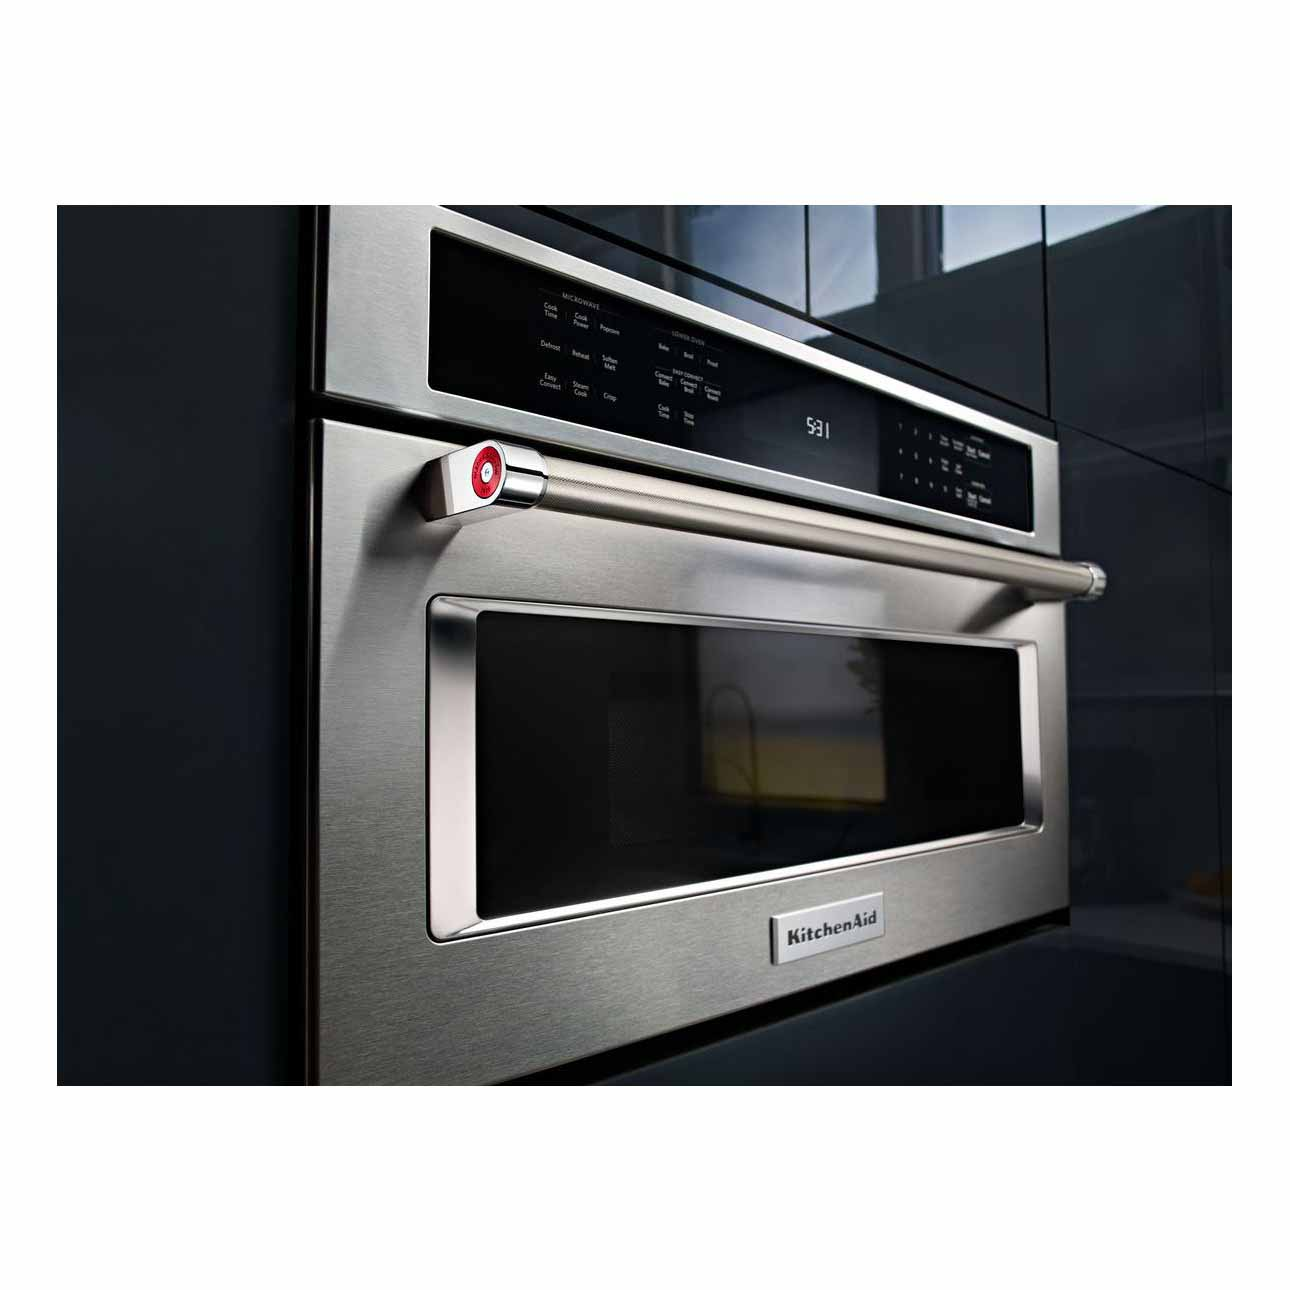 "KitchenAid KMBP107ESS 27"" Built-In Microwave Oven w/ Convection Cooking - Stainless Steel"